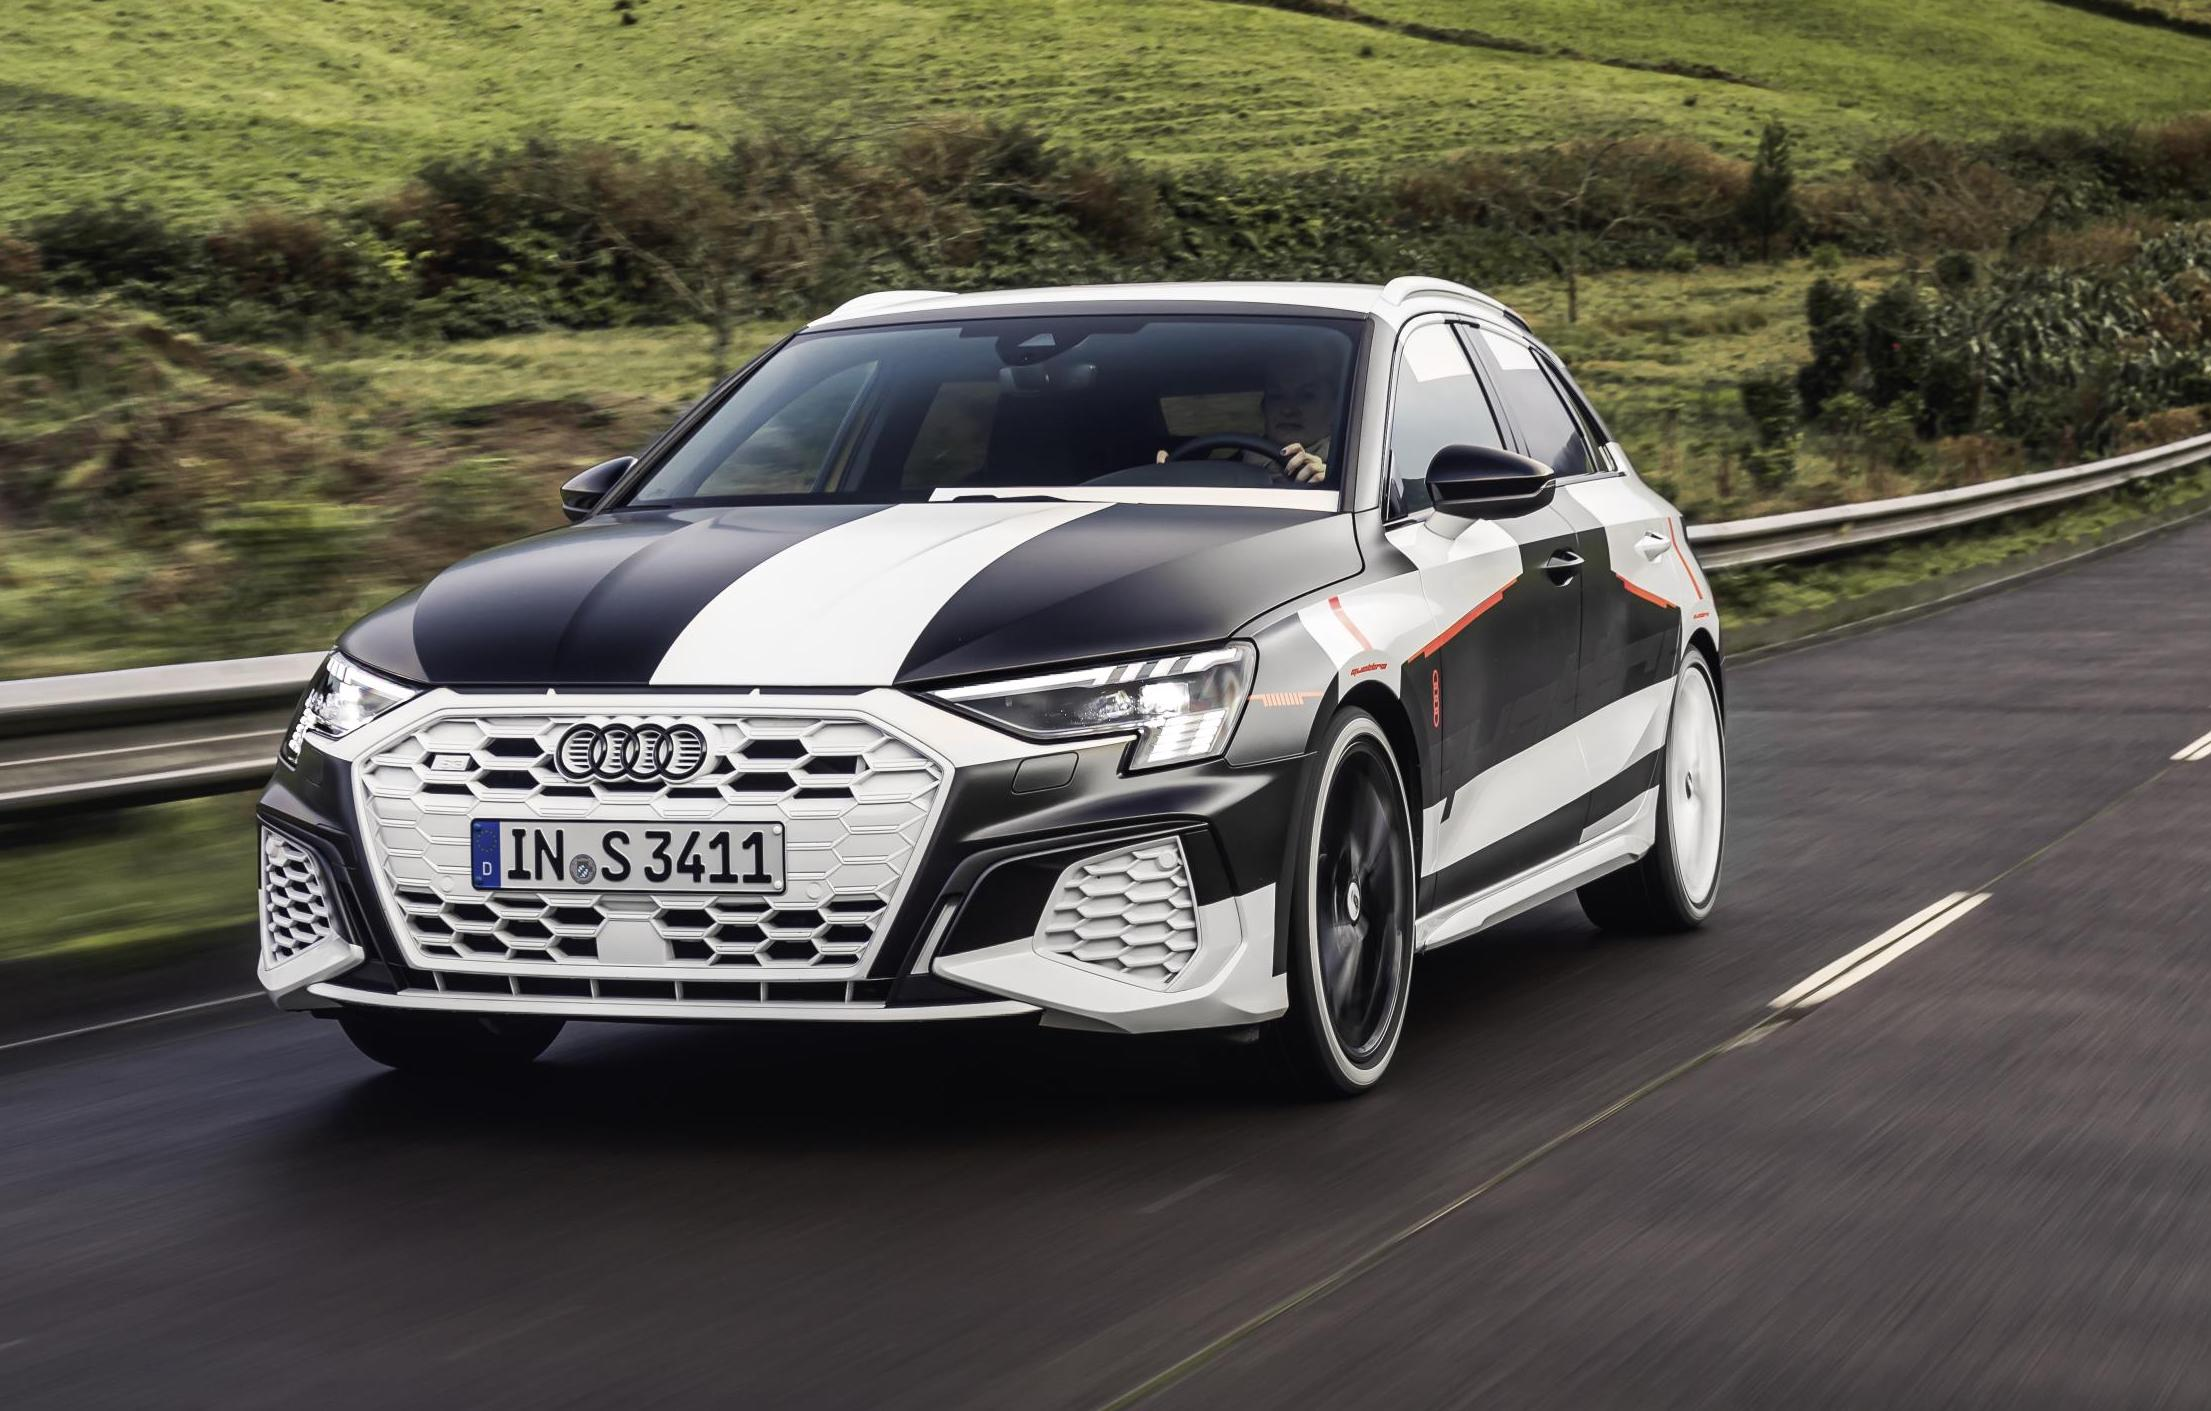 2021 Audi S3 previewed, gets new quattro AWD system ...